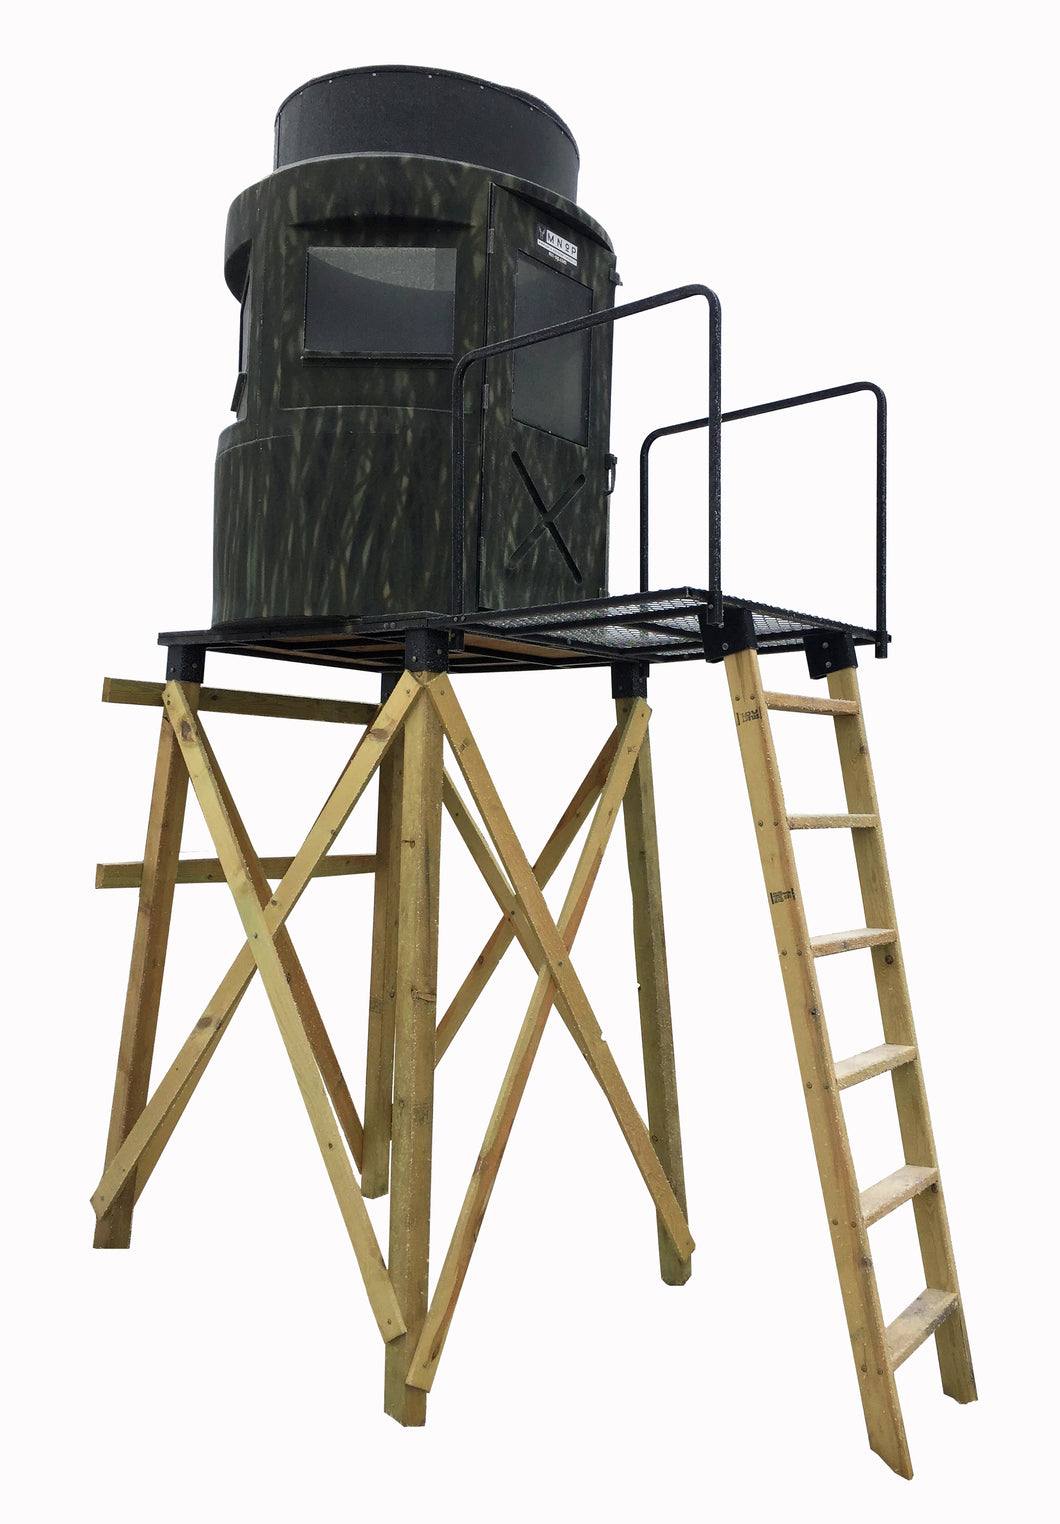 8' or 10' Tower With Ship Steps